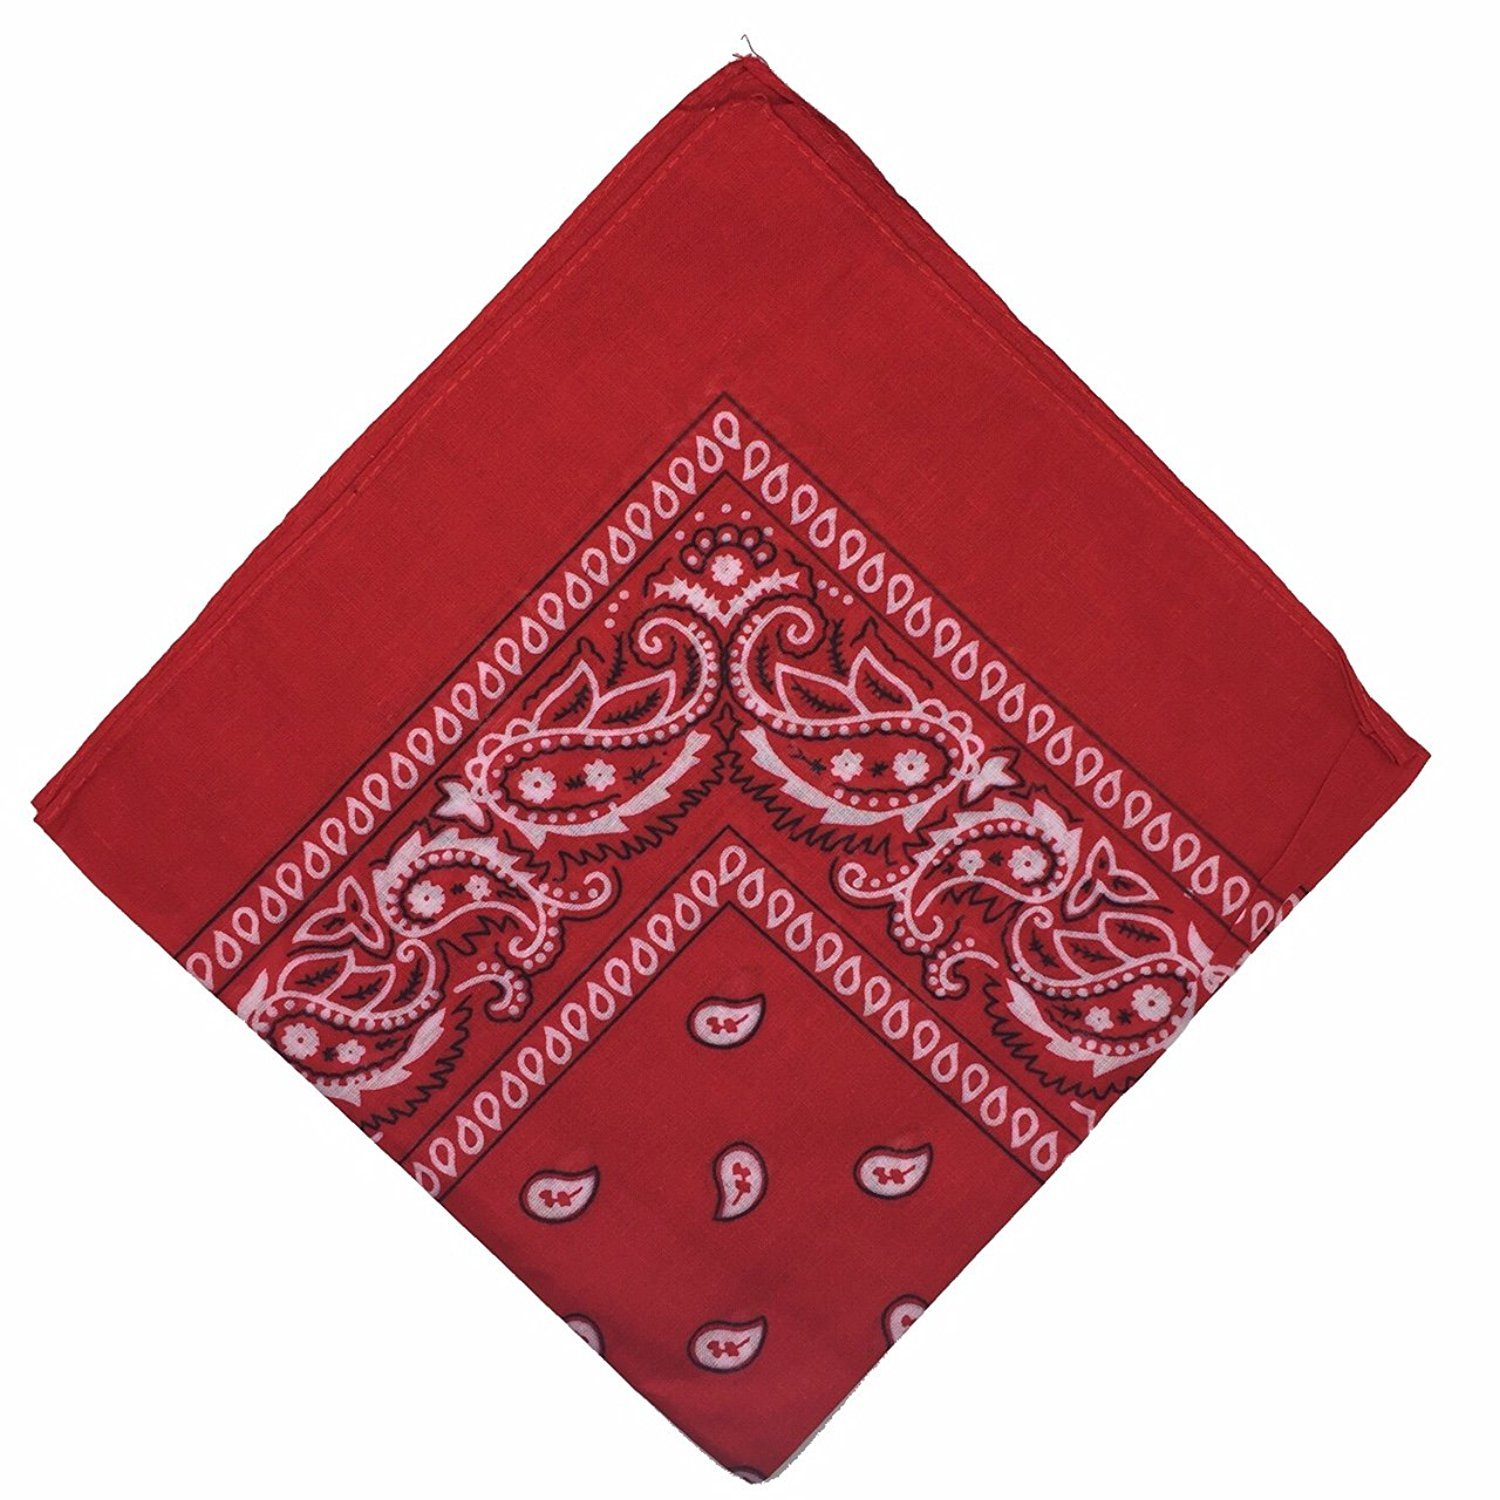 Bandana Hair Band Scarf Cow Boy Neck Wrist Wrap Paisley Biker Neck Head Wear GA